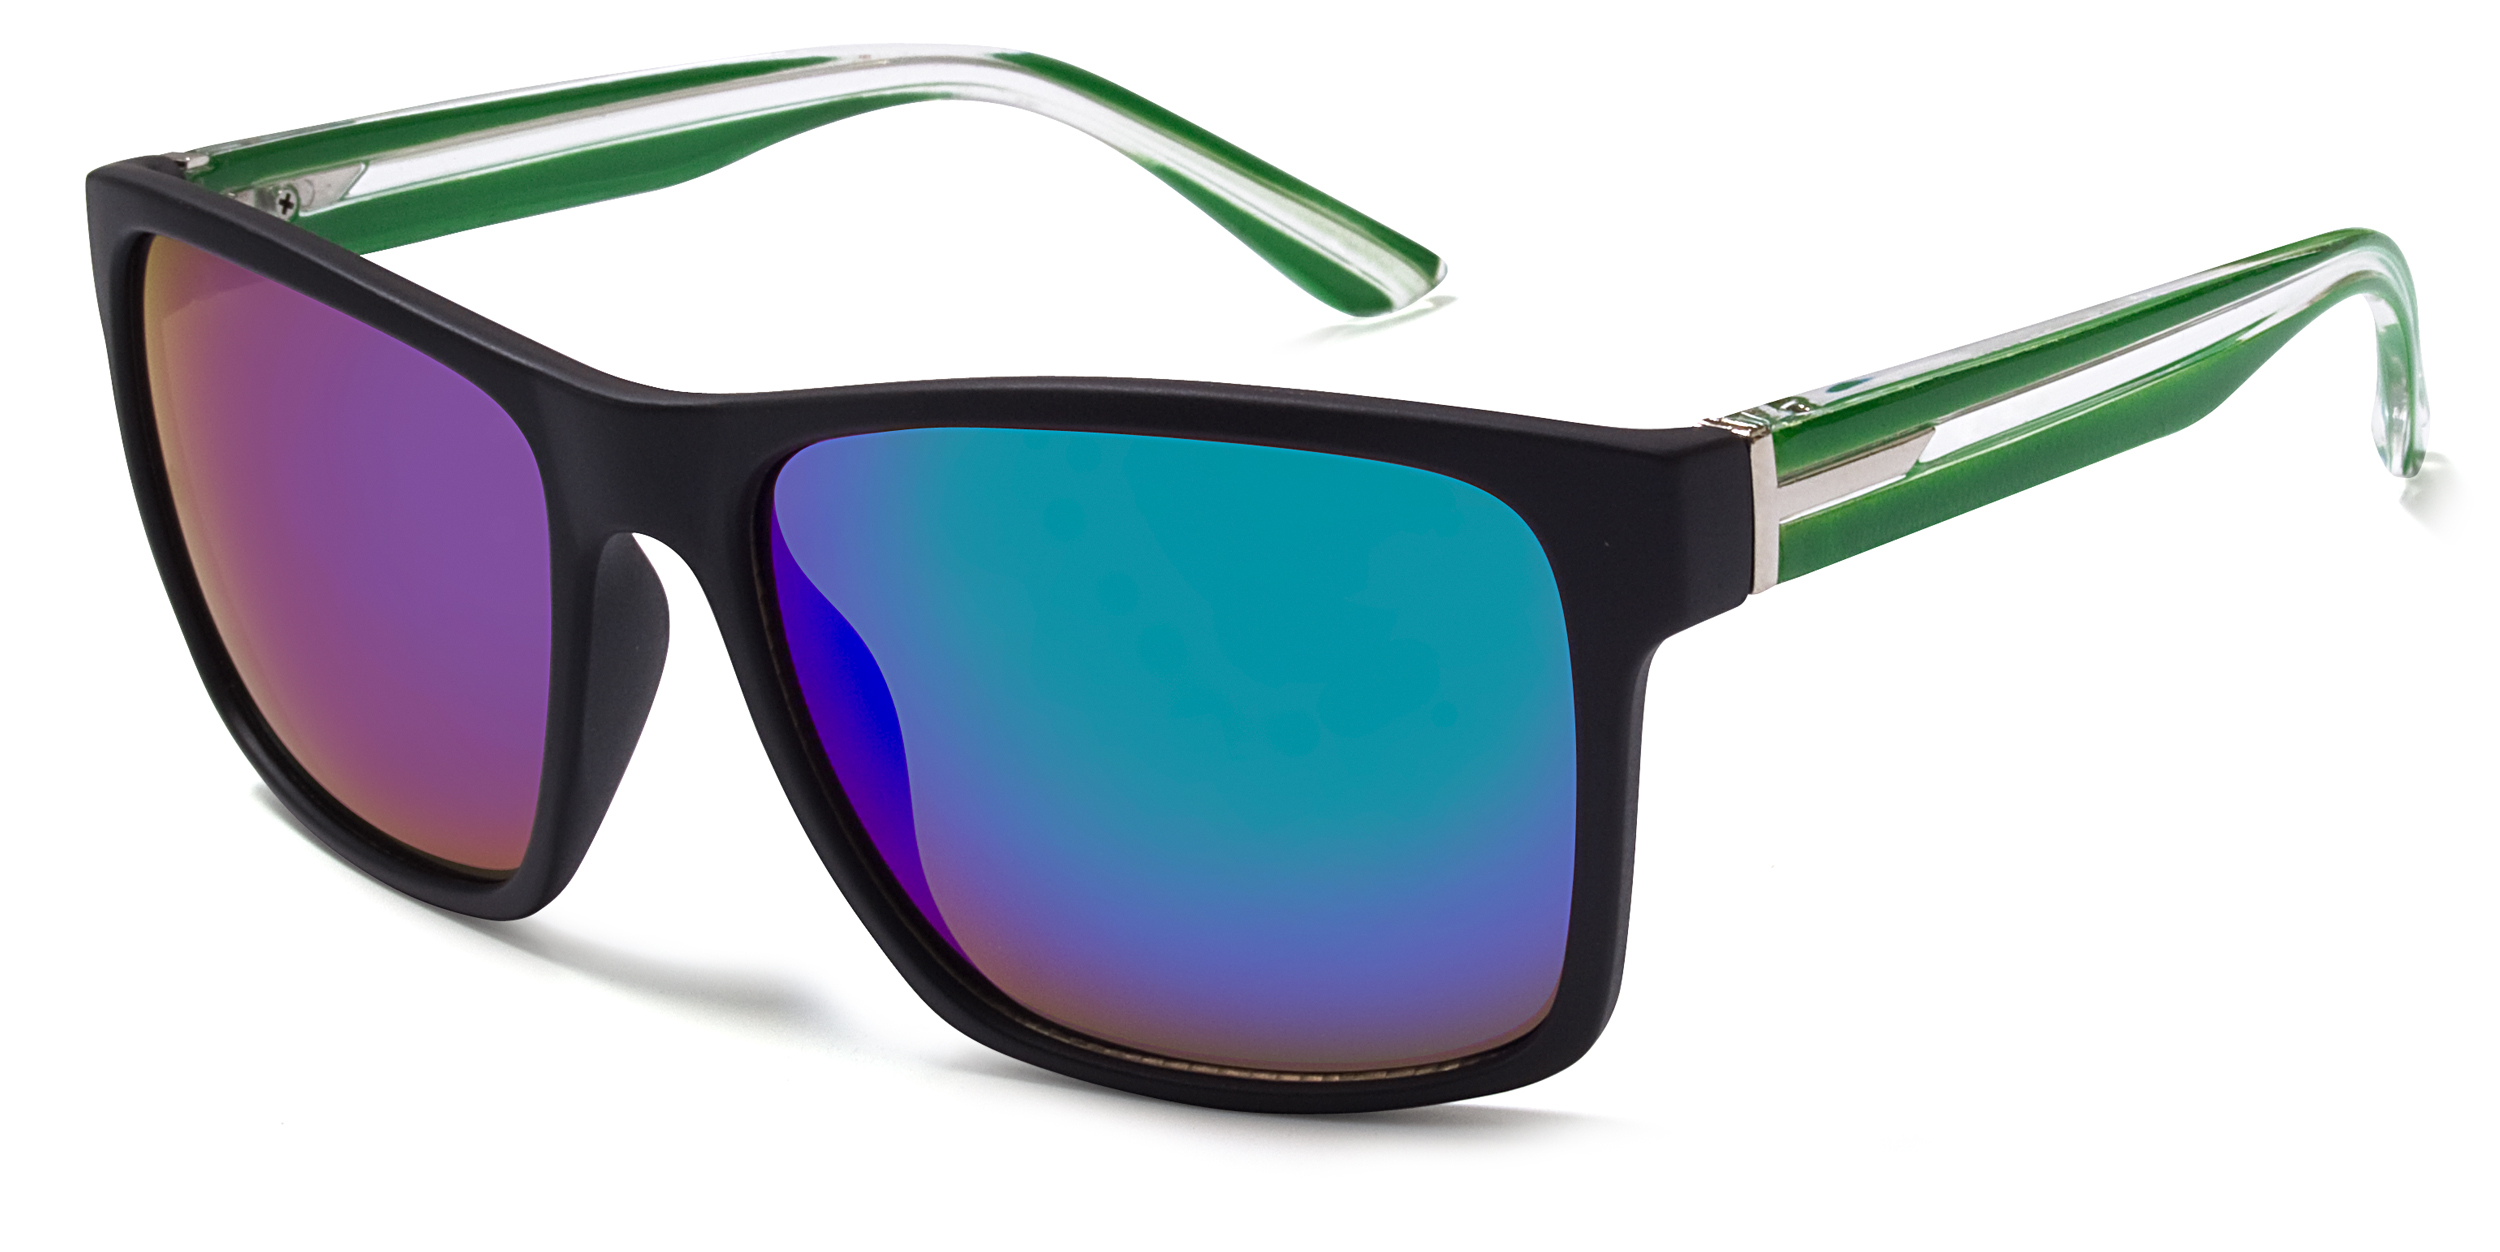 880f13aef2 Flash · Super Cool Sunglasses · Online Store Powered by Storenvy